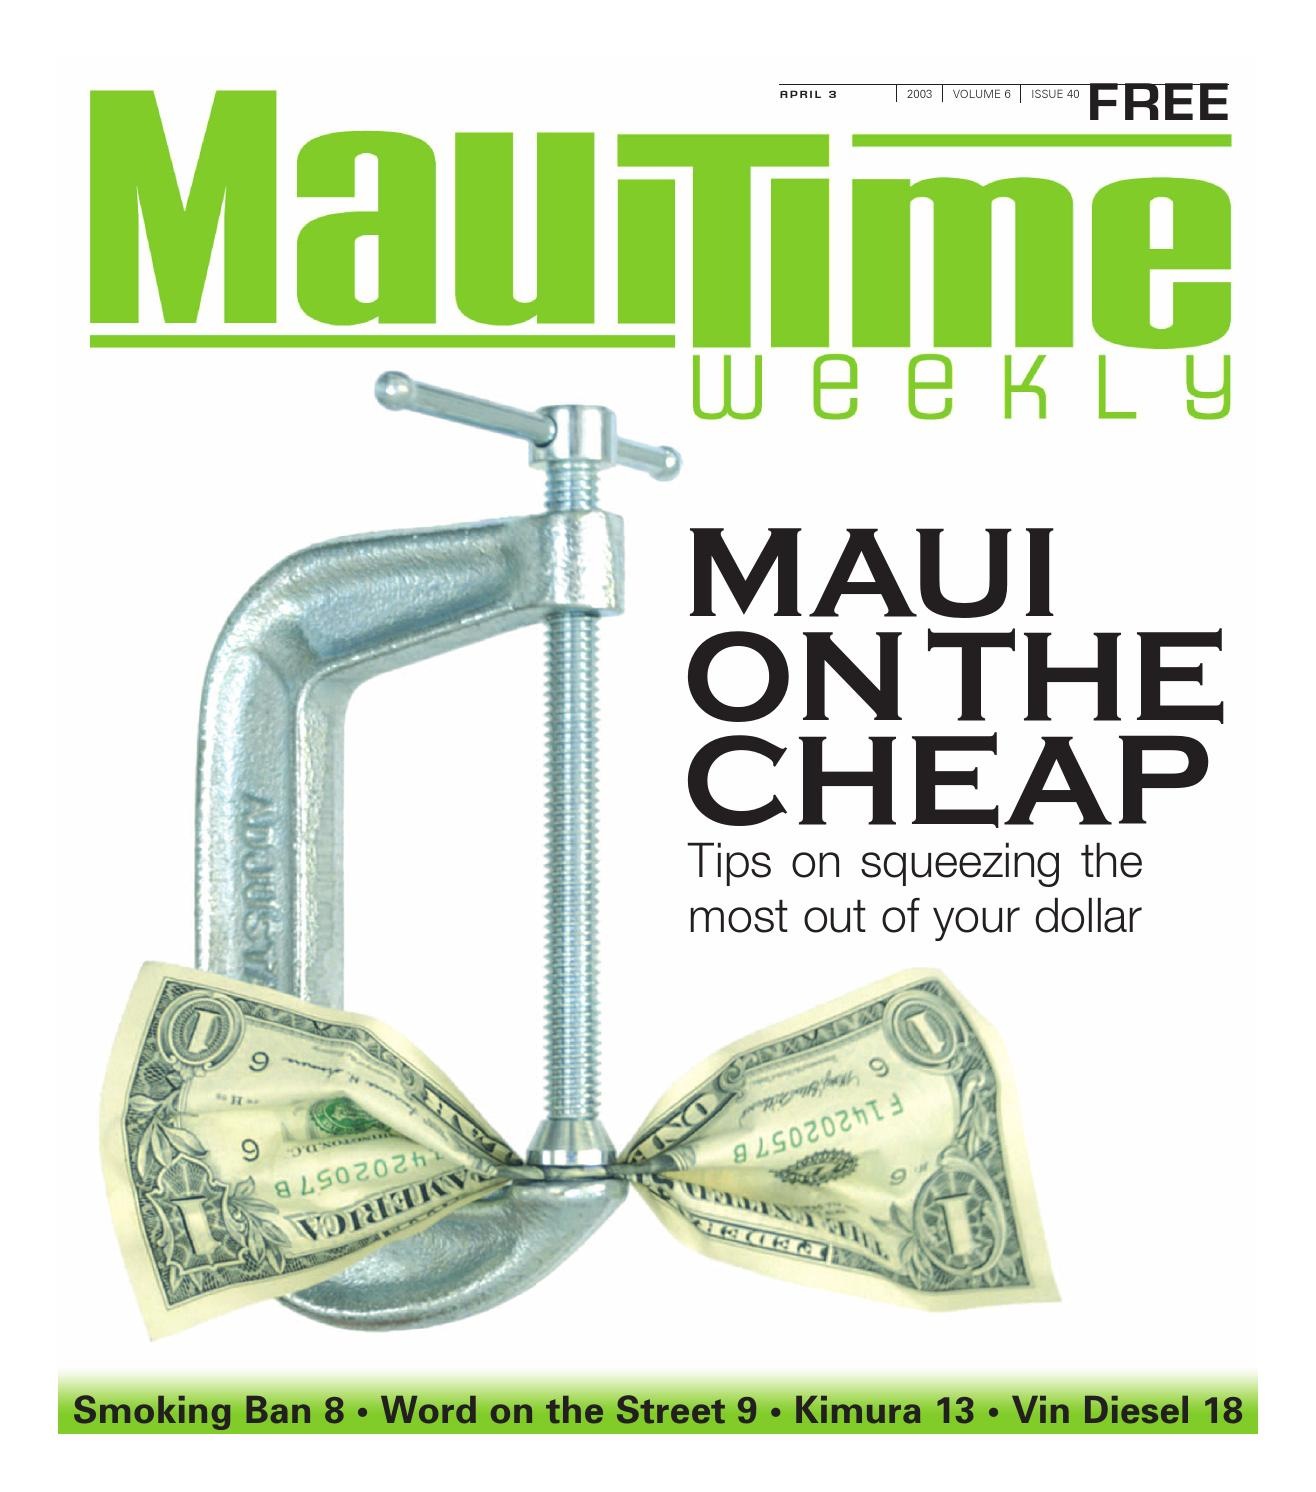 06.40 Living Cheaply on Maui, April 03, 2003, Volume 06, Issue 40, MauiTime